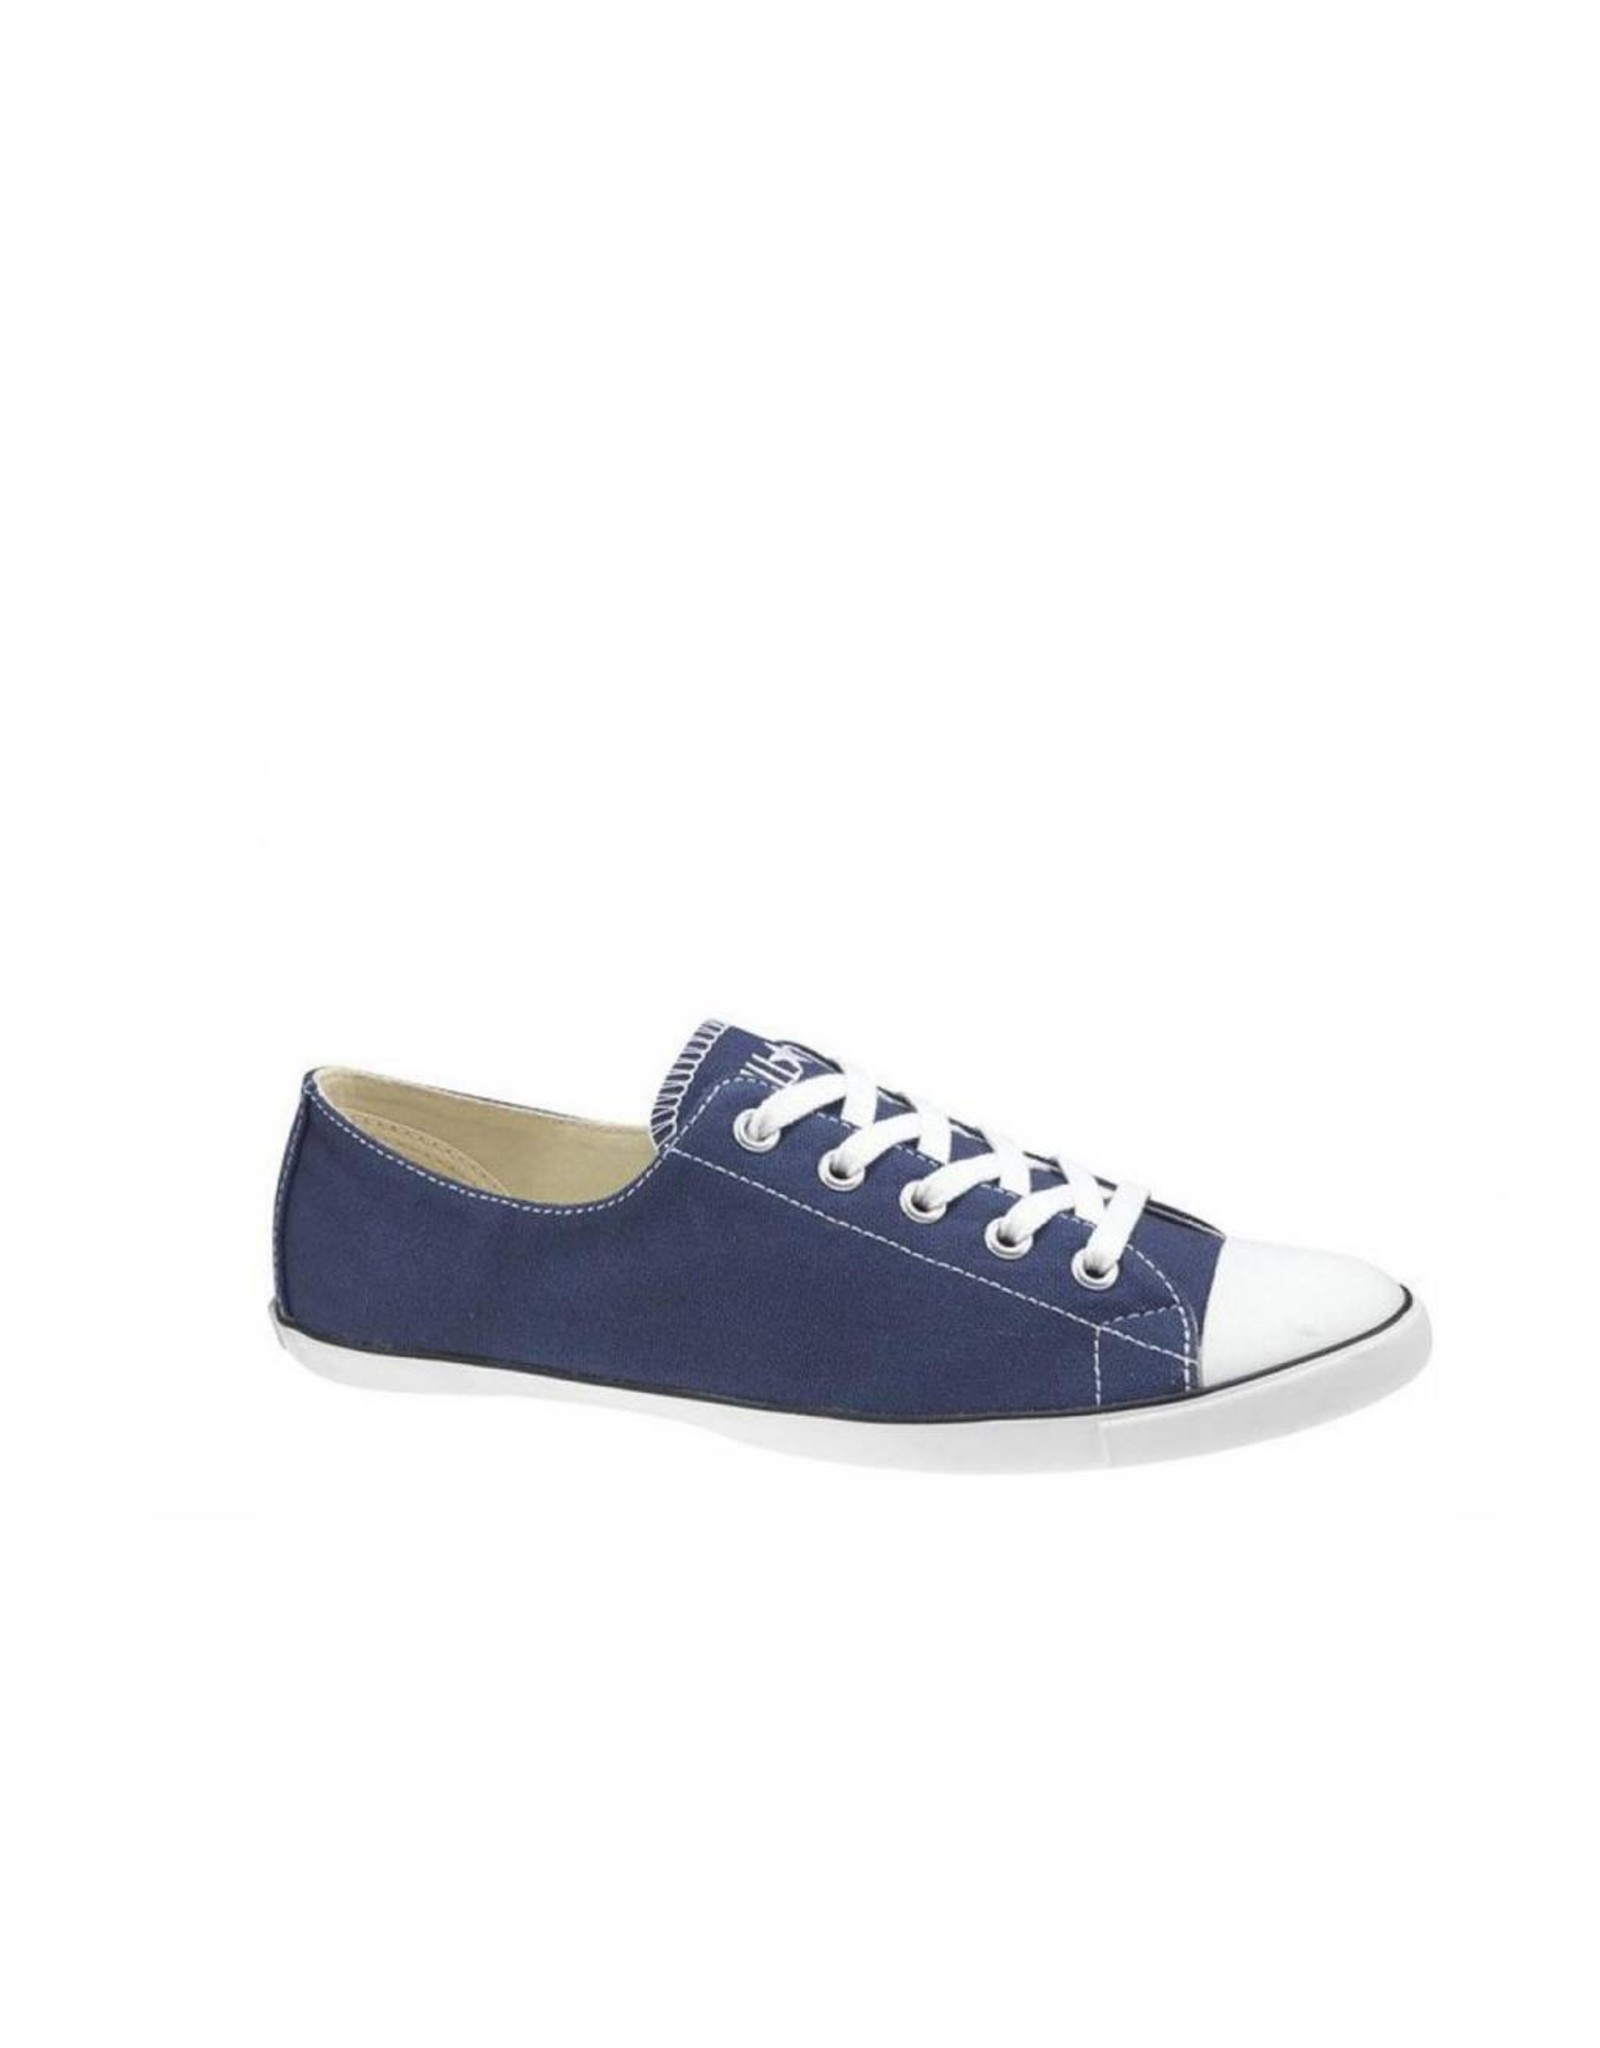 CONVERSE Chuck Taylor All Star LIGHT OX NAVY WHITE C2LN-511531